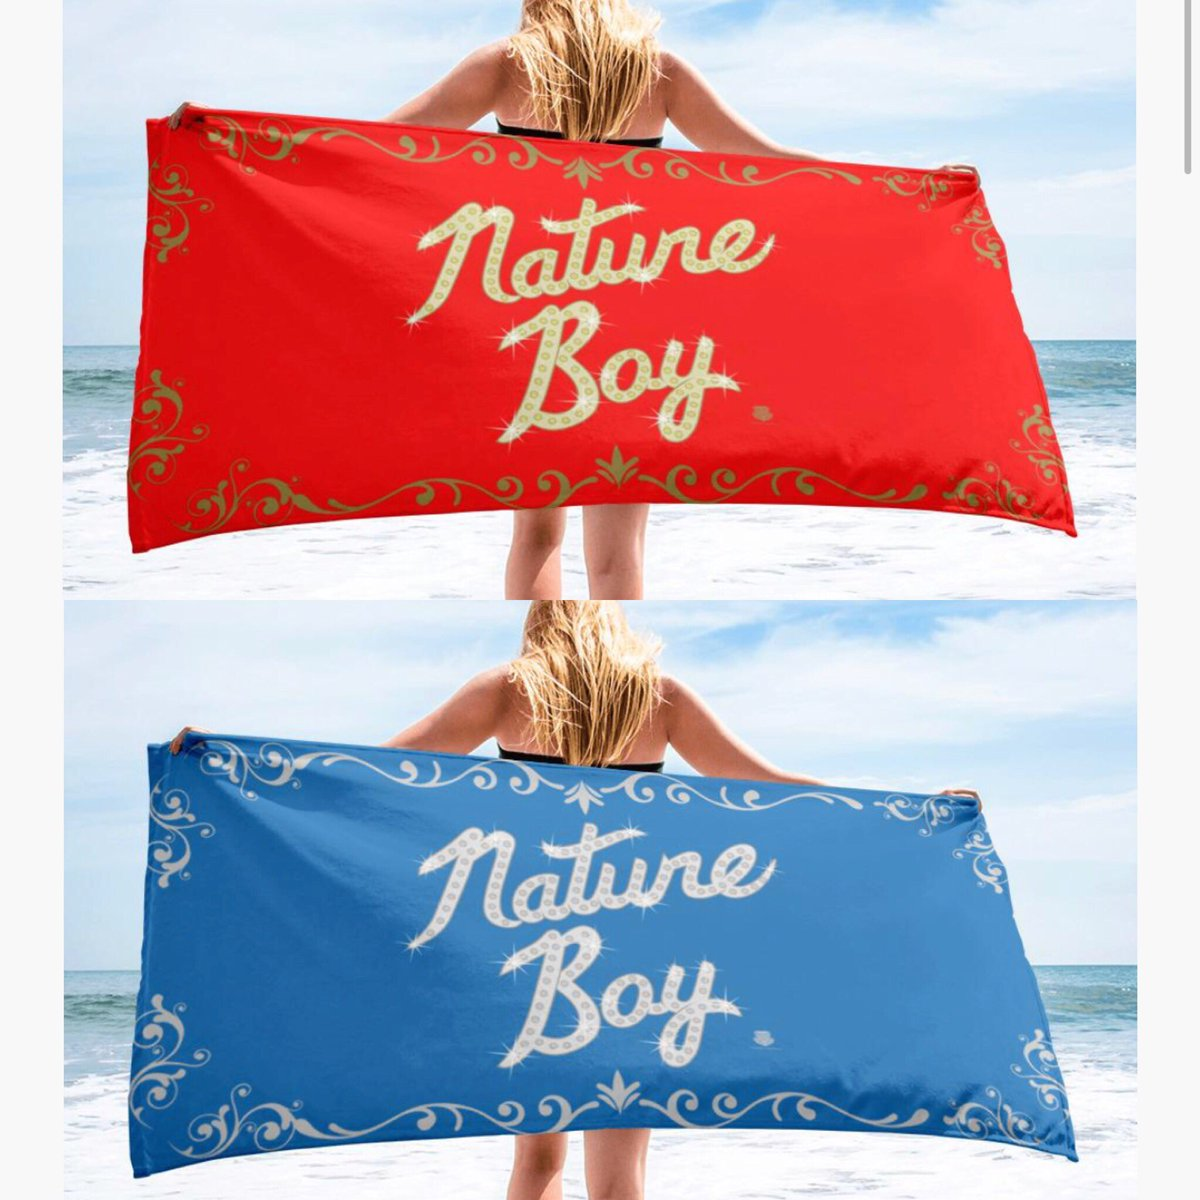 Spring Break Will Be Here Before You Know It! Make Sure You Have Your Nature Boy Beach Towel! WOOOOO! RicFlairShop.com